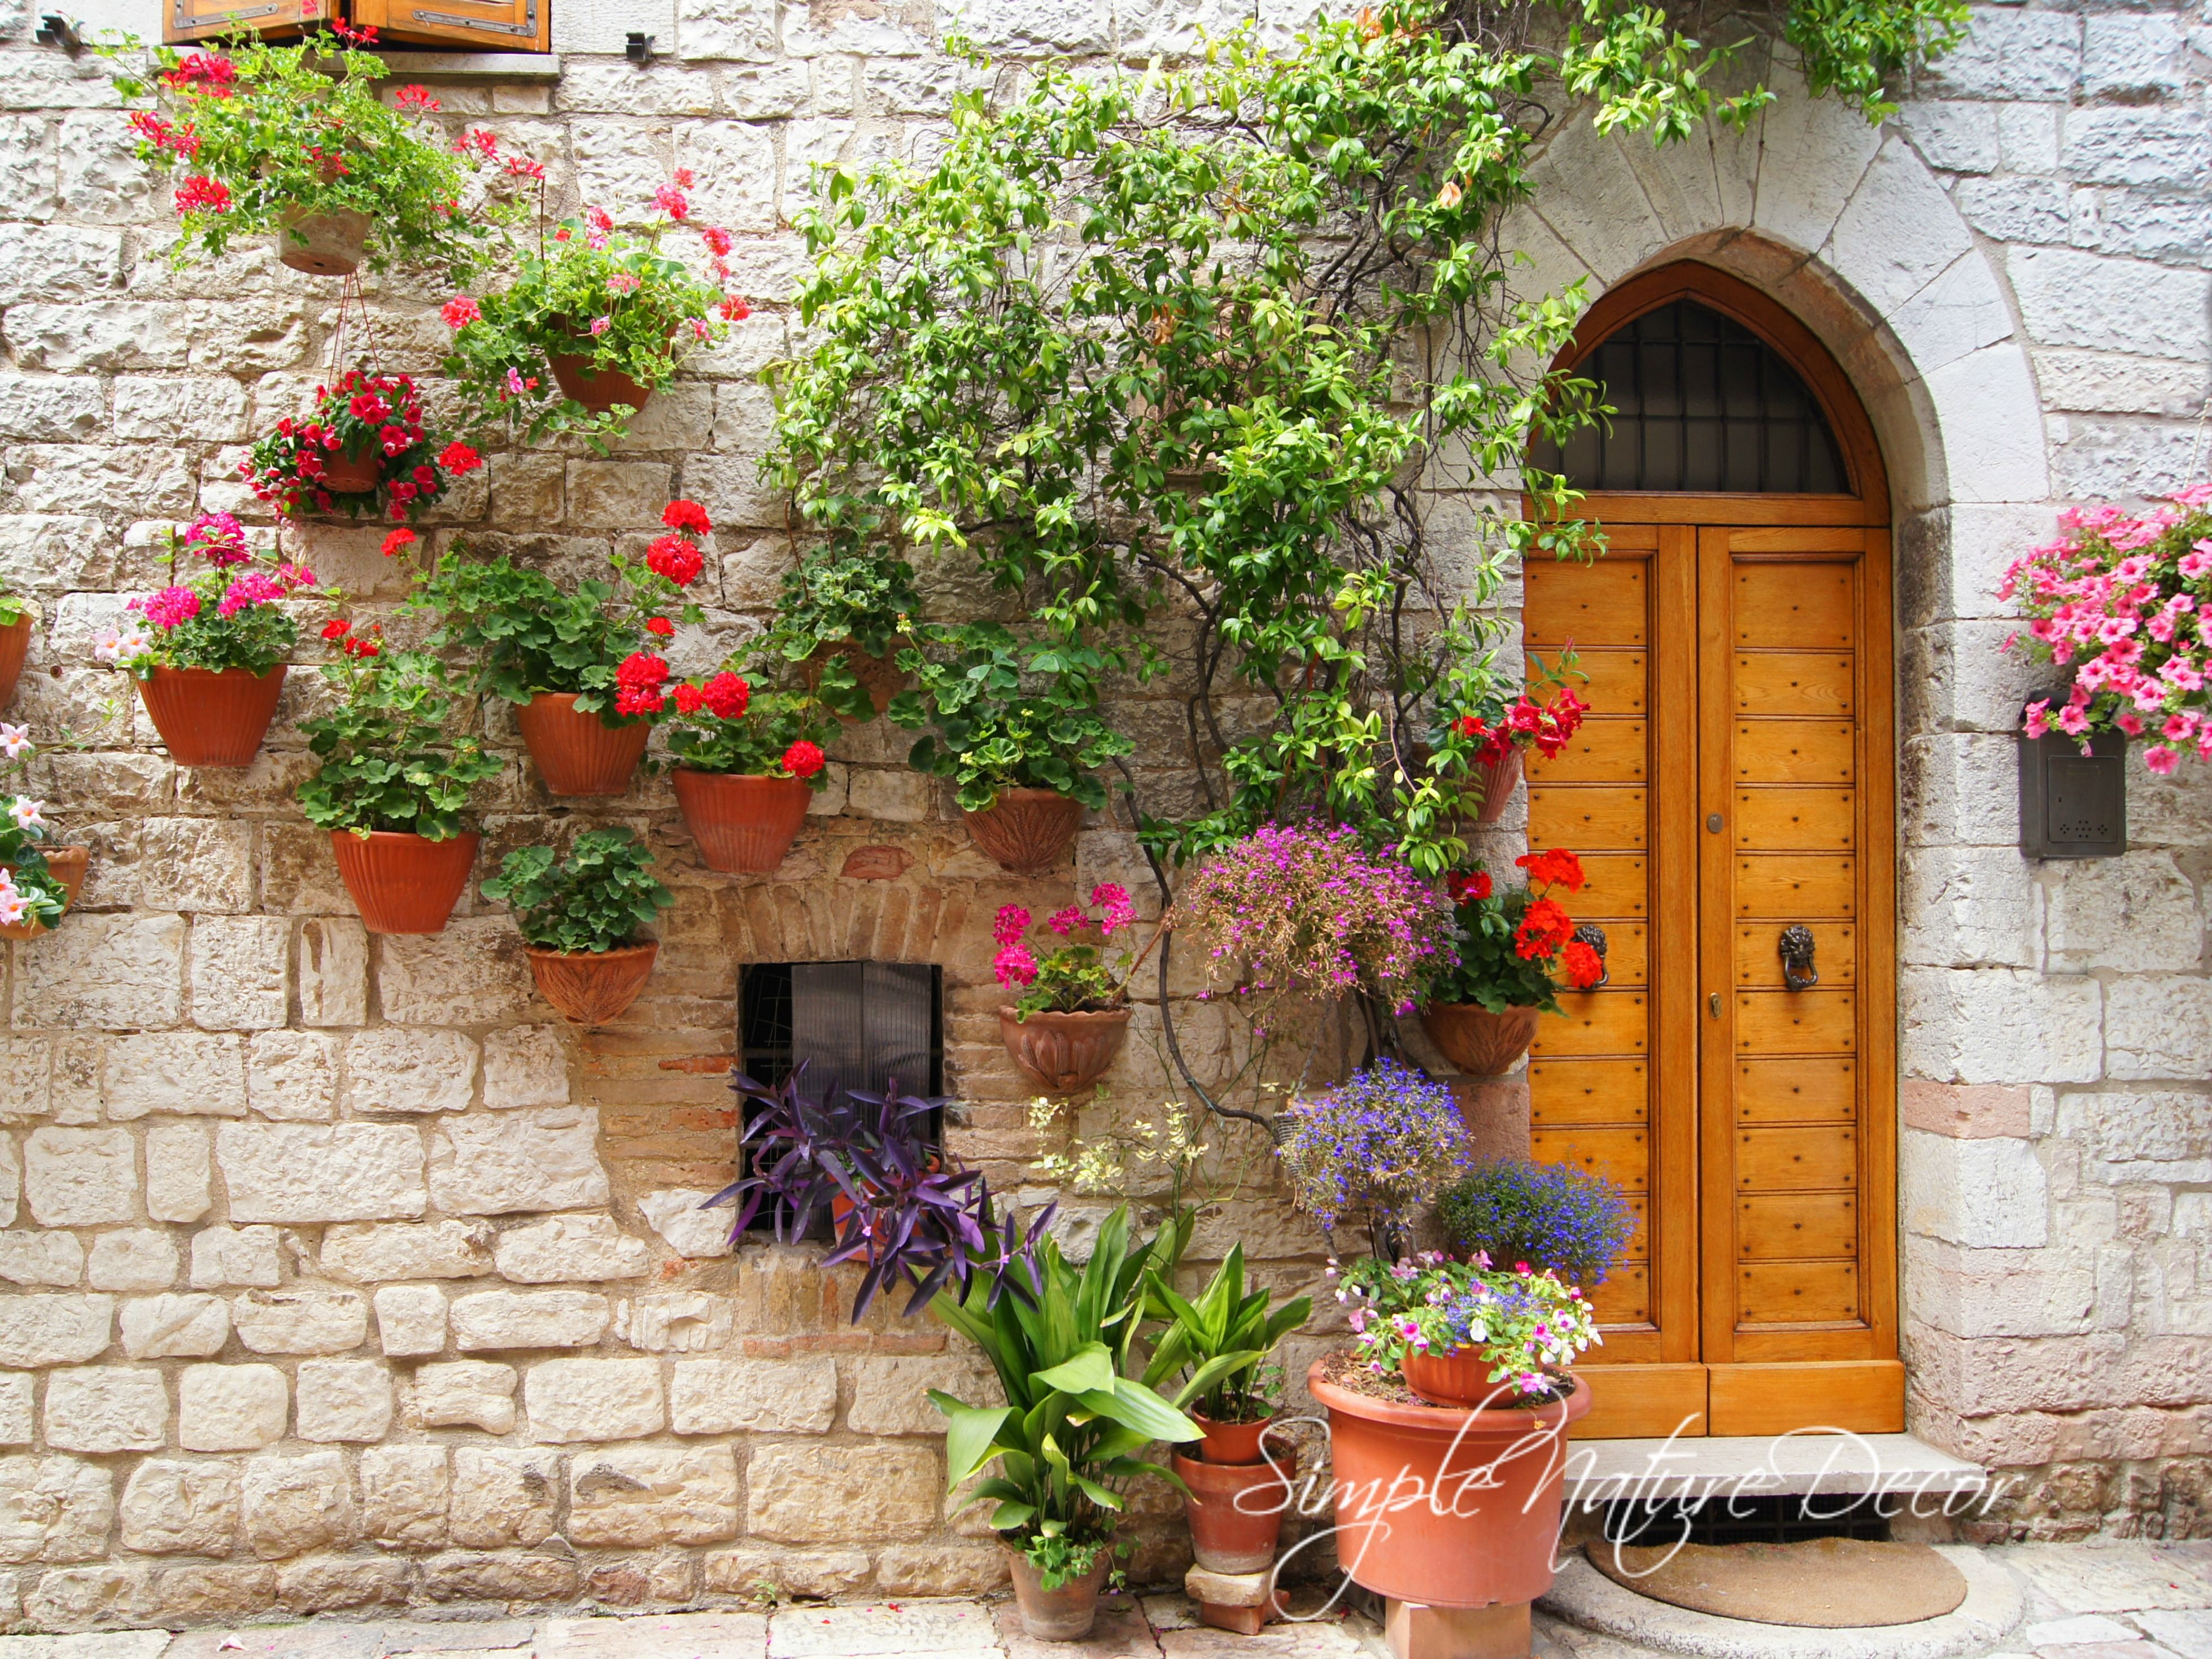 brick wall flower tuscany pots on a wall doors and windows pinterest tuscany and front yards. Black Bedroom Furniture Sets. Home Design Ideas